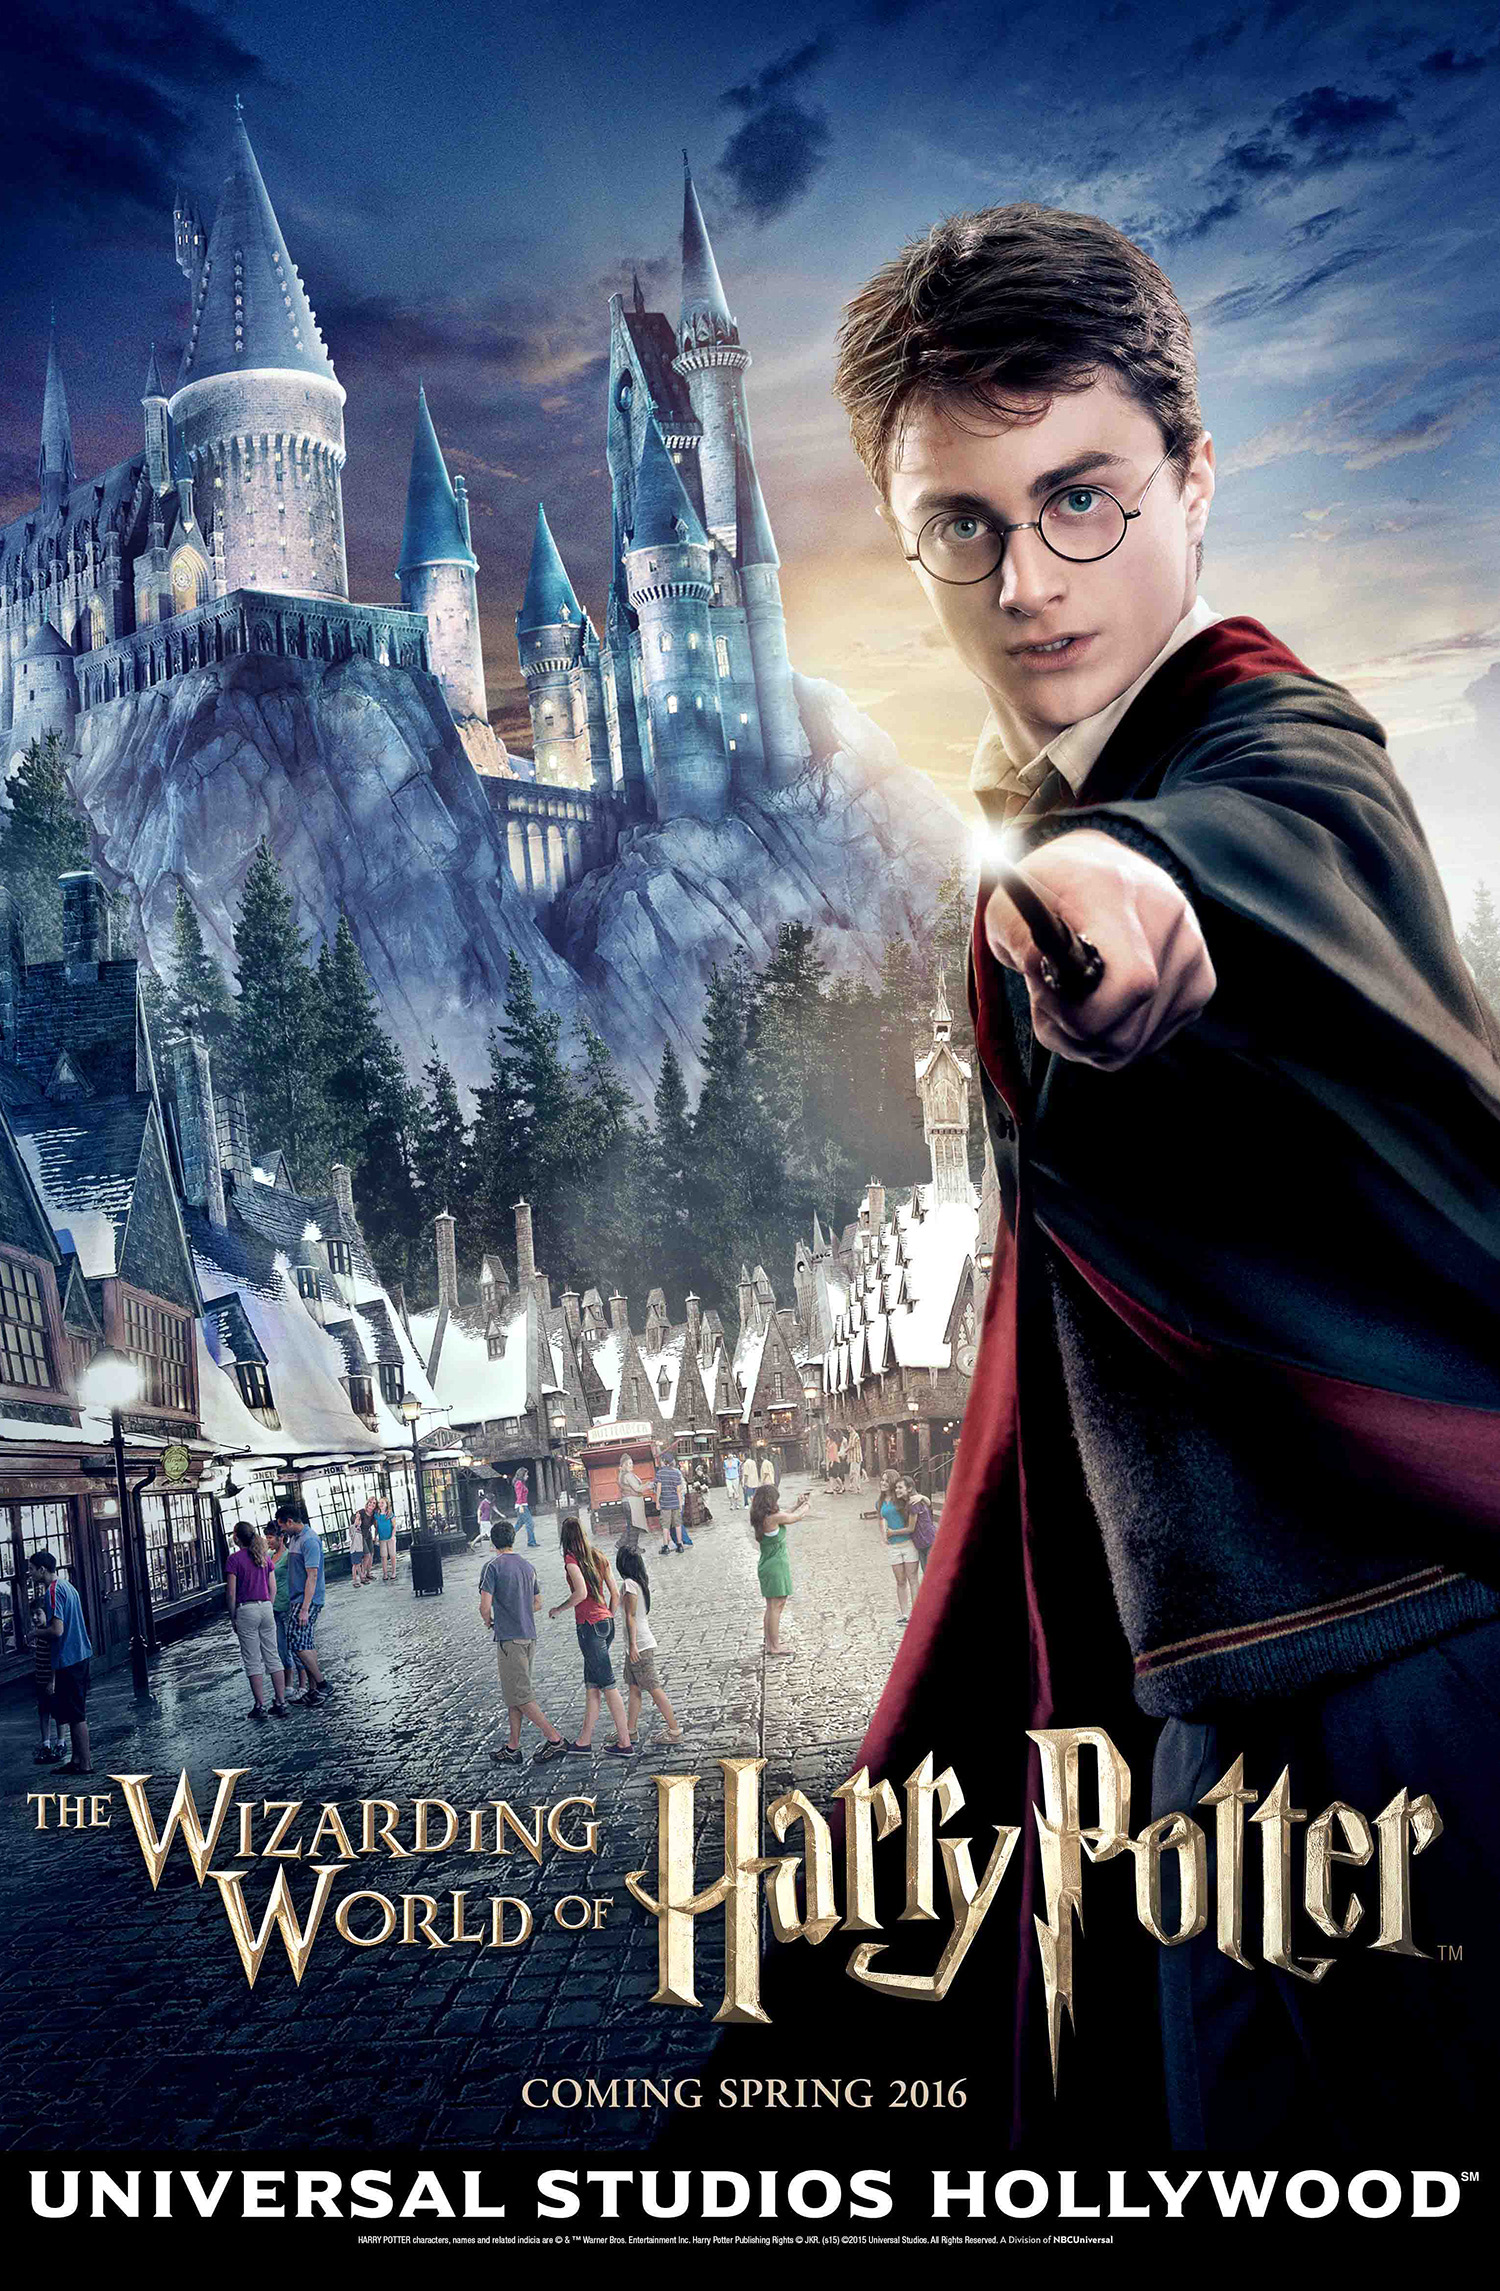 'Wizarding World of Harry Potter' Hollywood poster